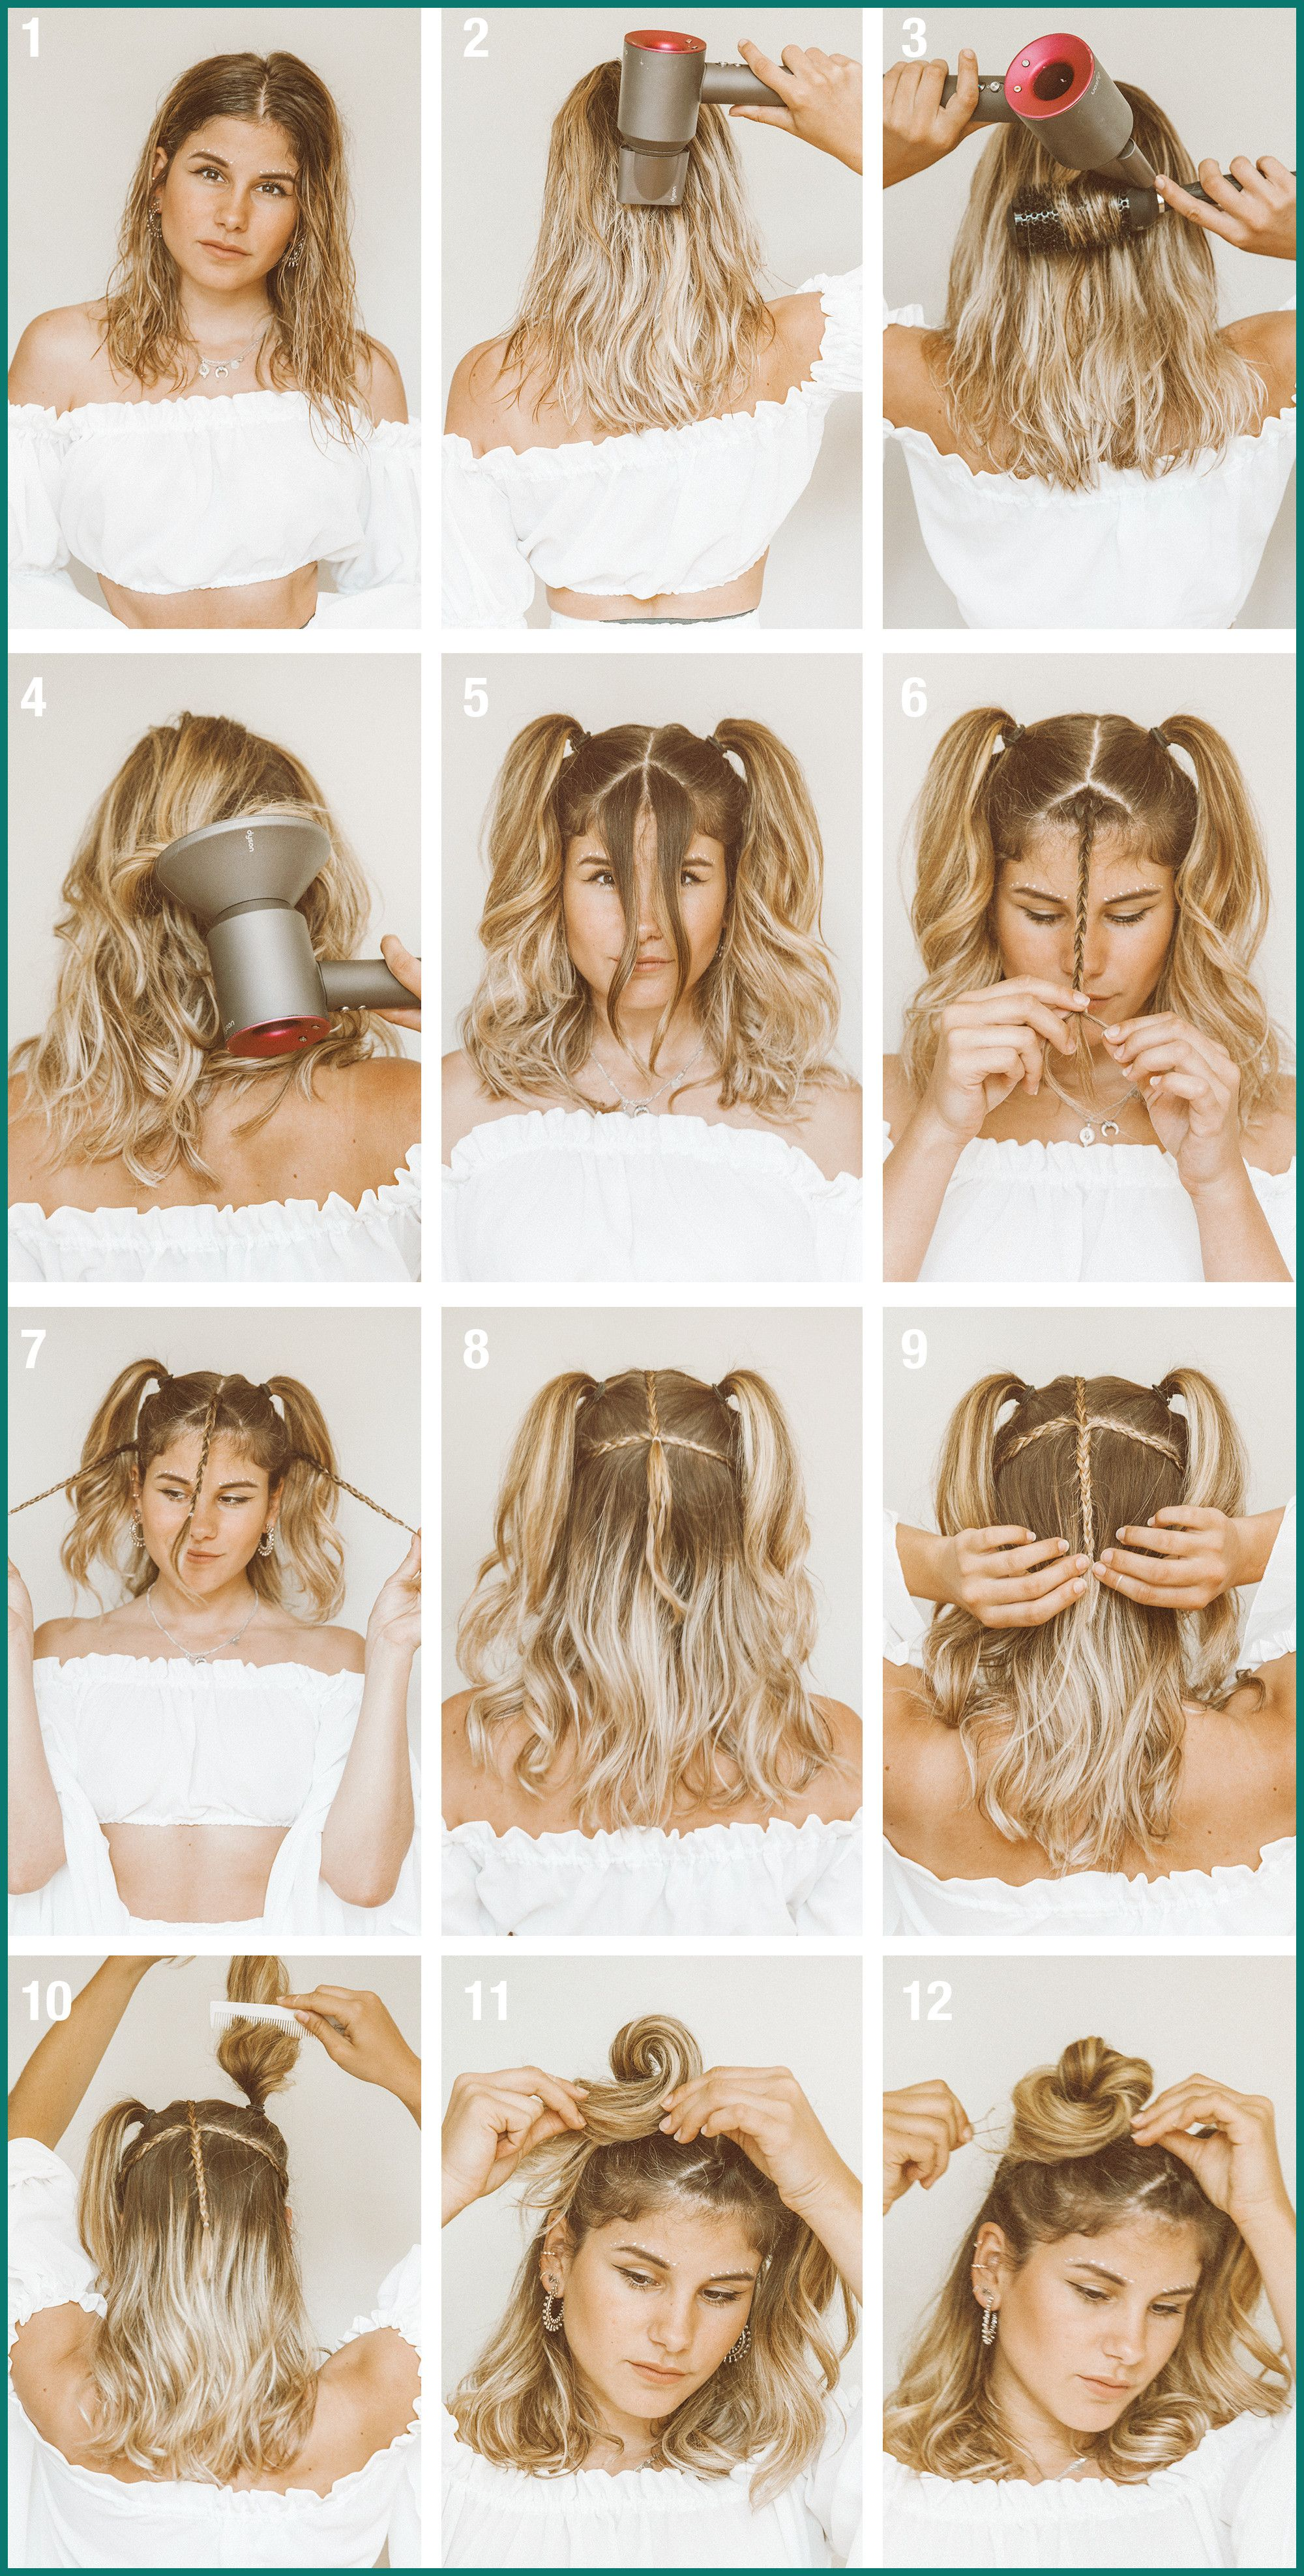 How To Do Easy Hairstyles On Short Hair Bun Short Hair Styles Easy Hair Styles Easy Hairstyles